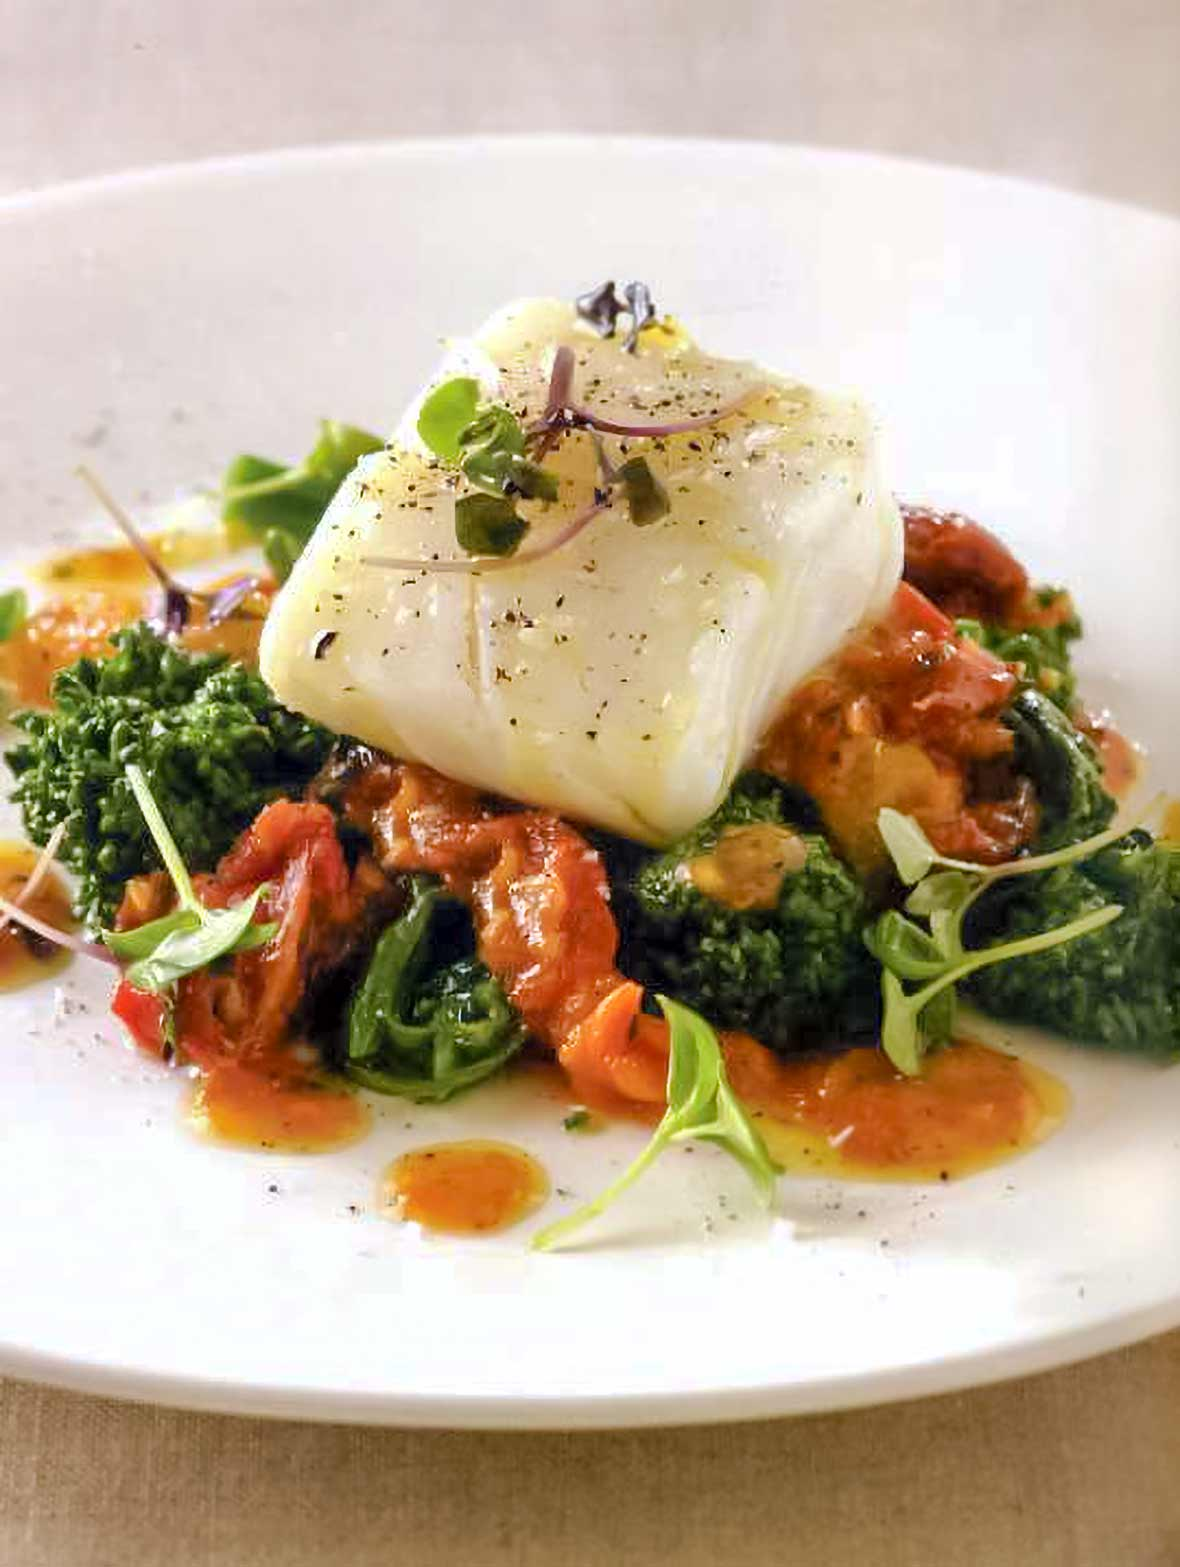 A fillet of olive oil poached cod atop tomato and broccoli rave in a white plate